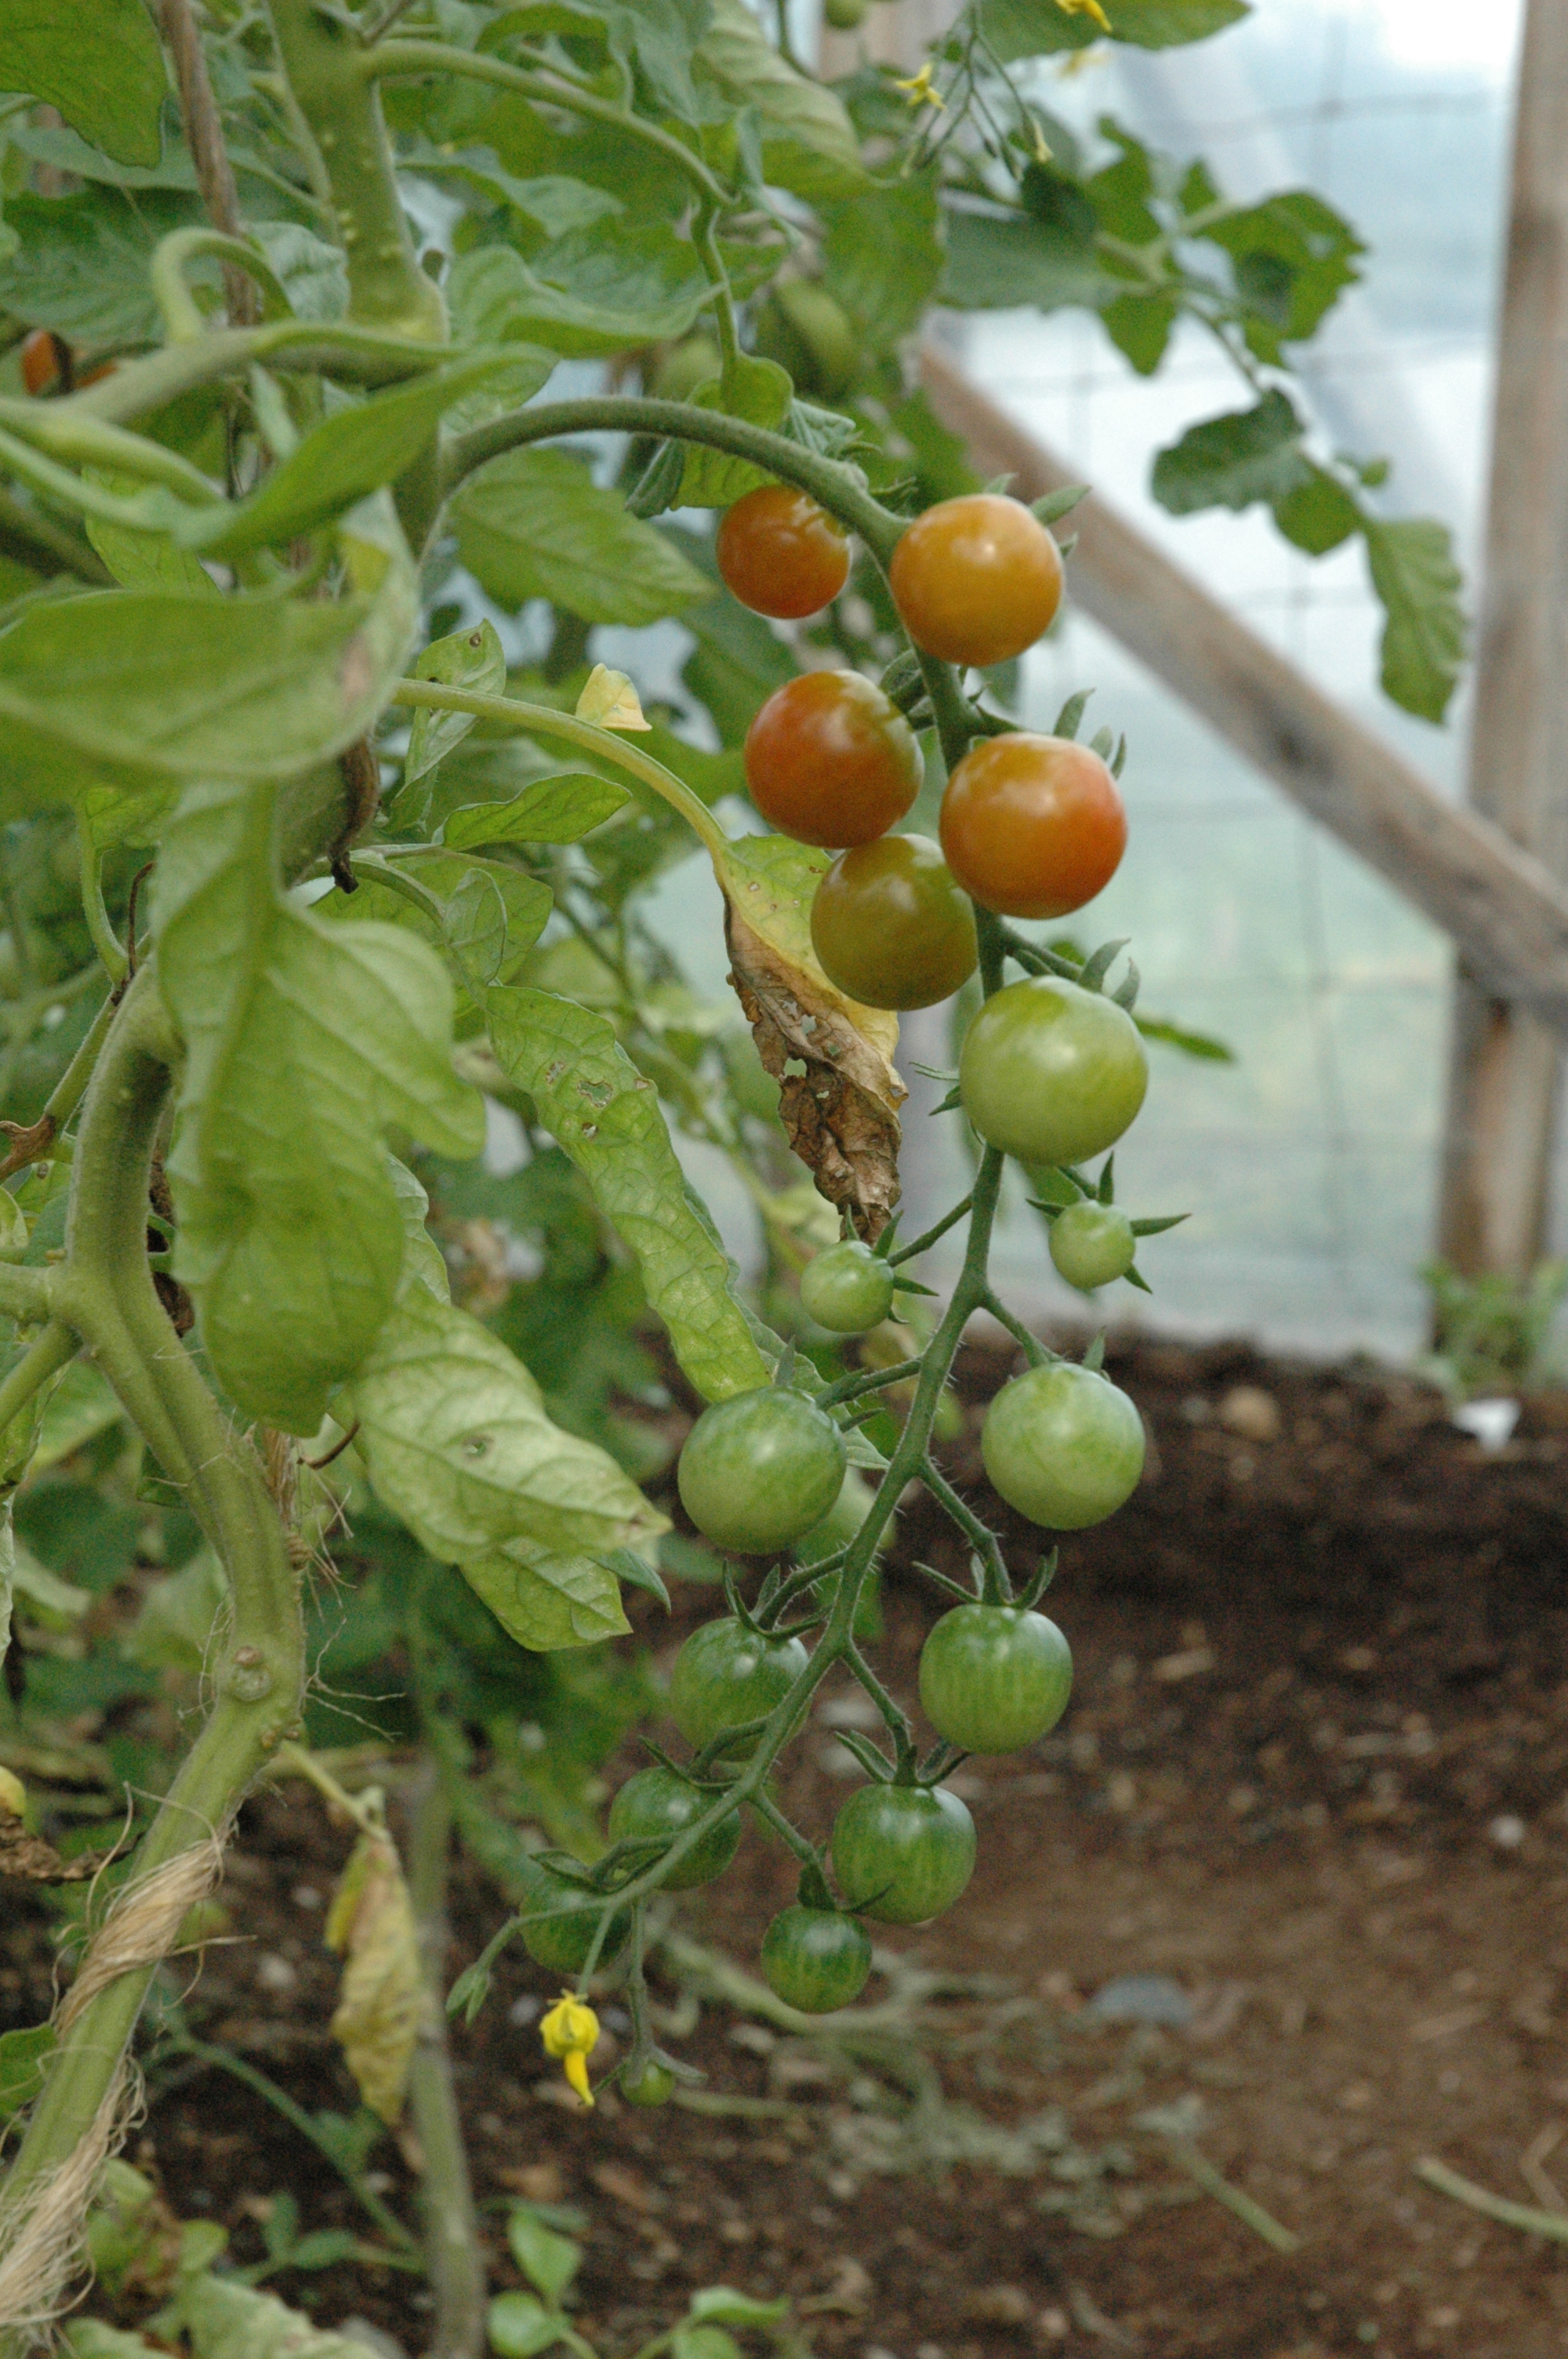 The Fruits of Labour: Tomatoes